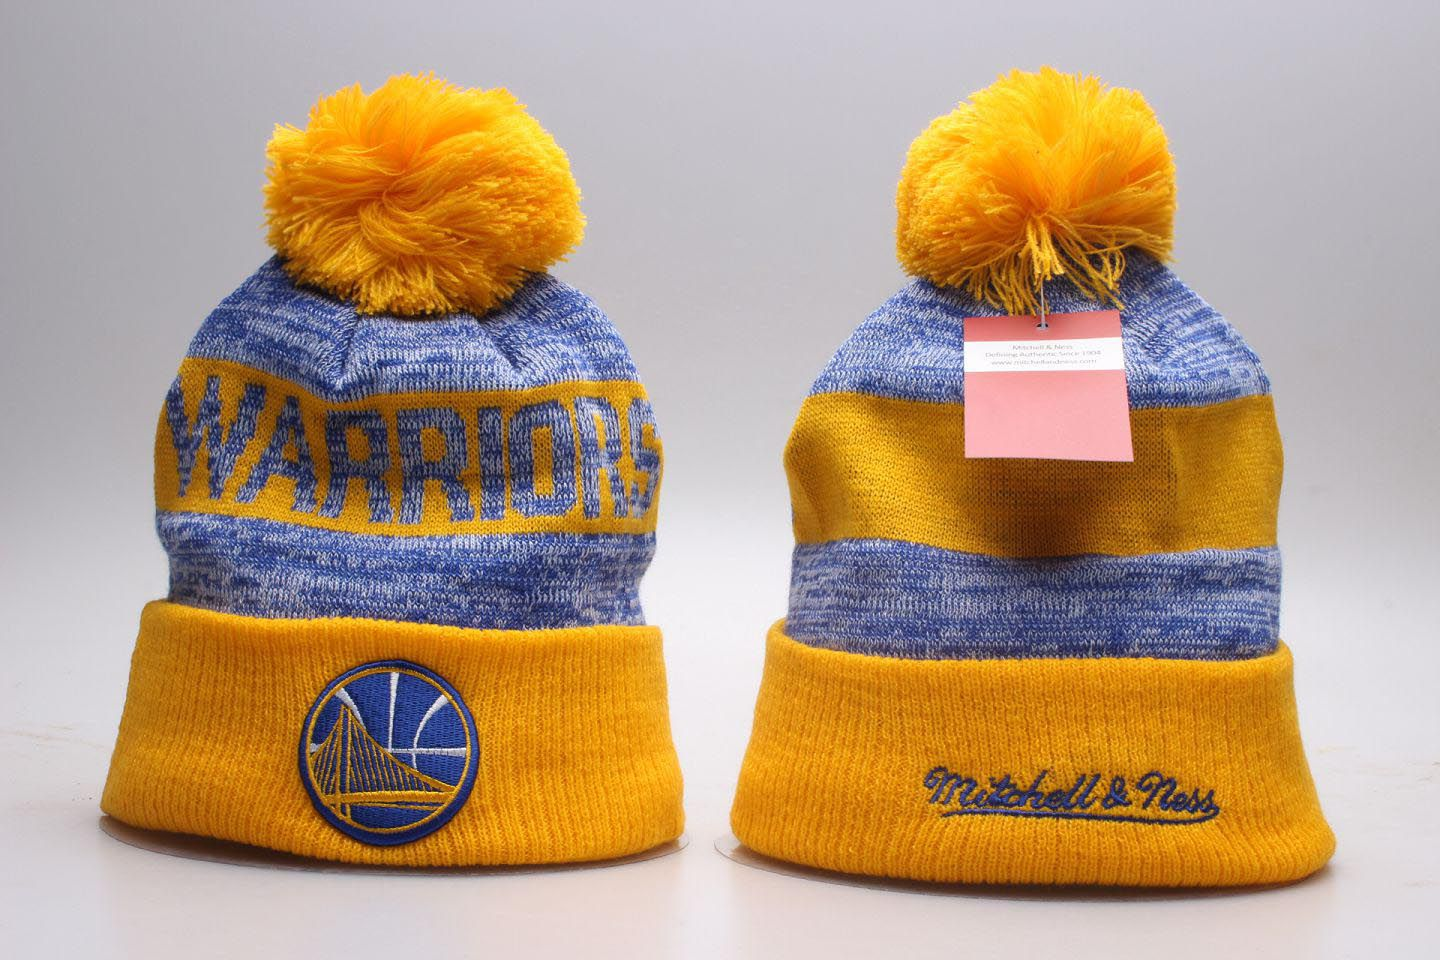 NBA Golden State Warriors Beanie hot hat